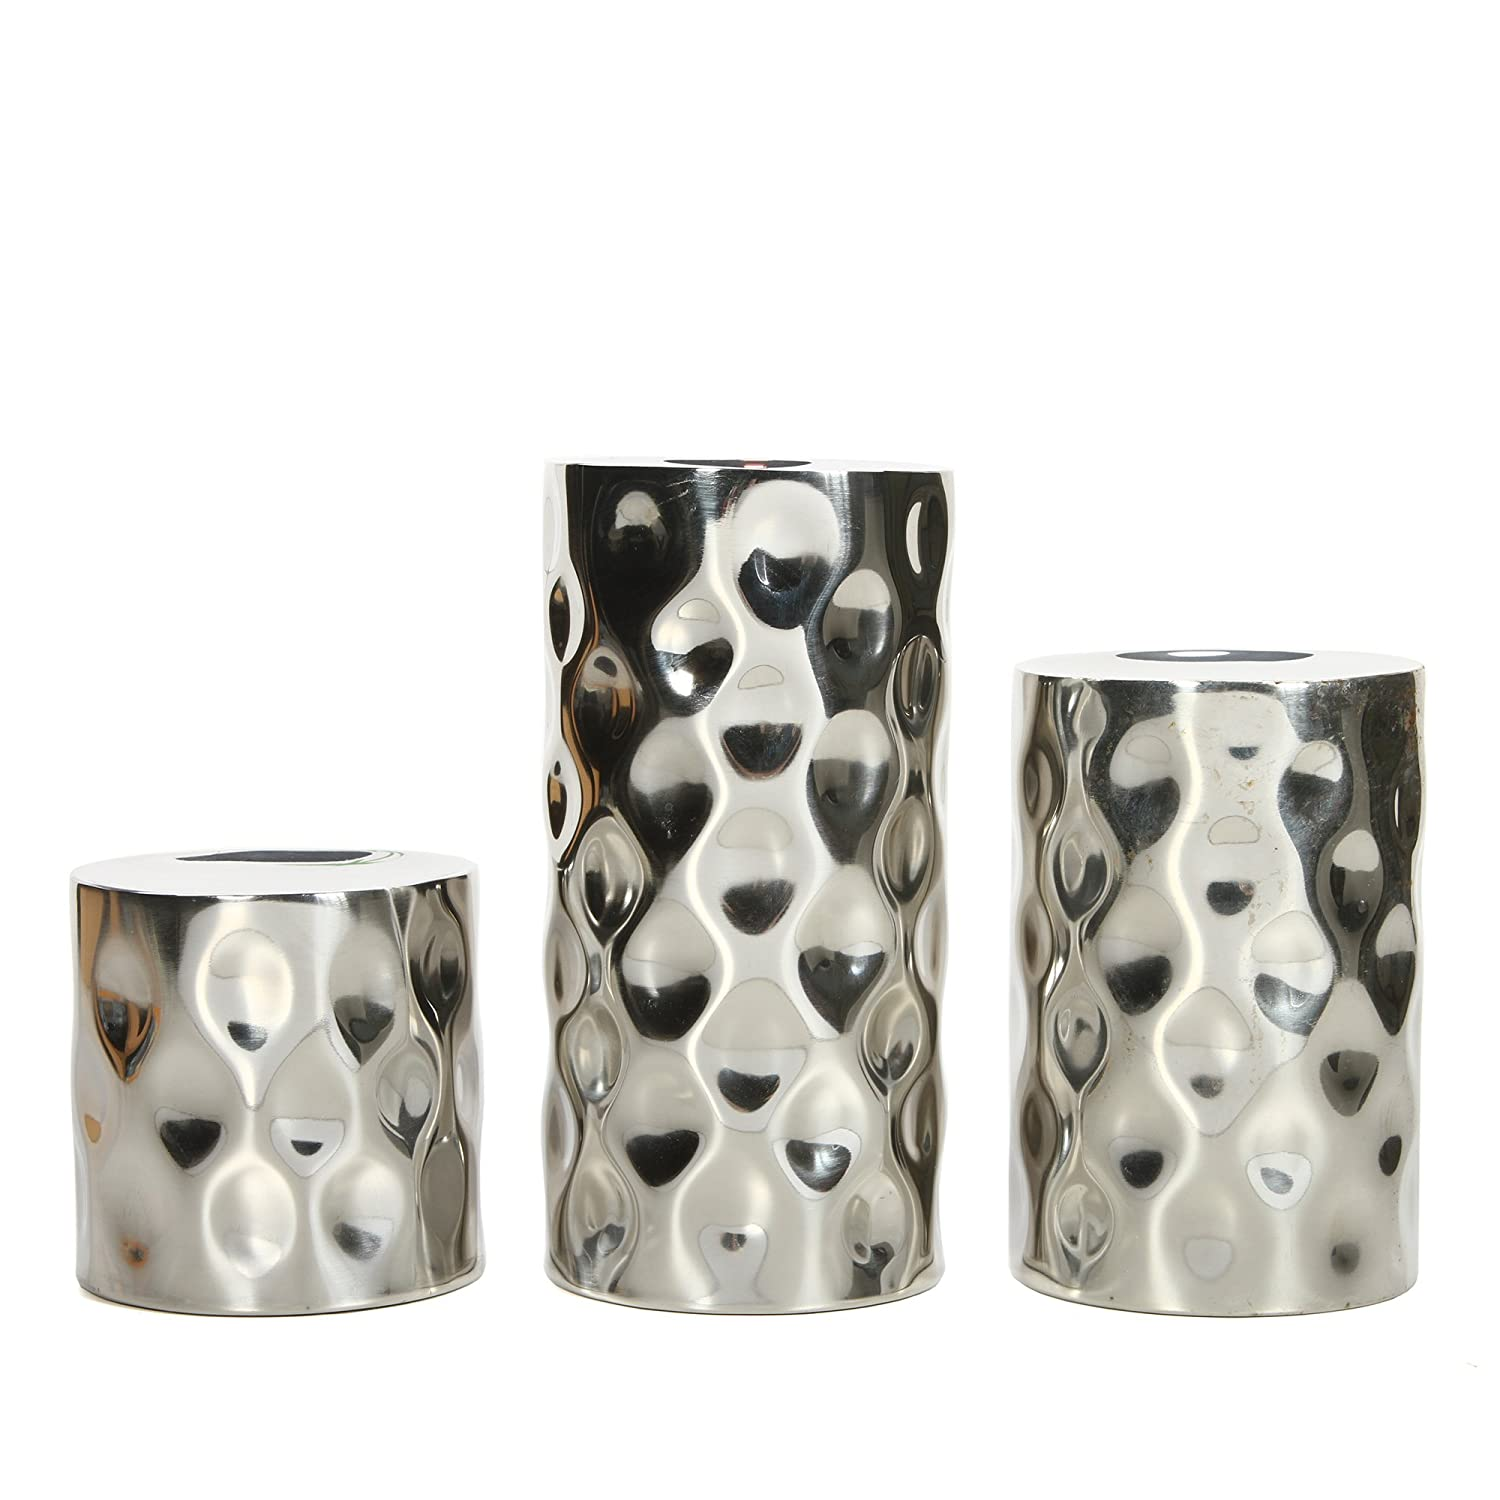 Hosley Nickle Pillar Candle Holders. Nickle Ideal GIFT DECOR Wedding, Party, Home, SPA, Aromatherapy, Reiki, Votive, Tea Light, Candle garden Vase/Floral HG Global FBA-G86780ON-1-EA